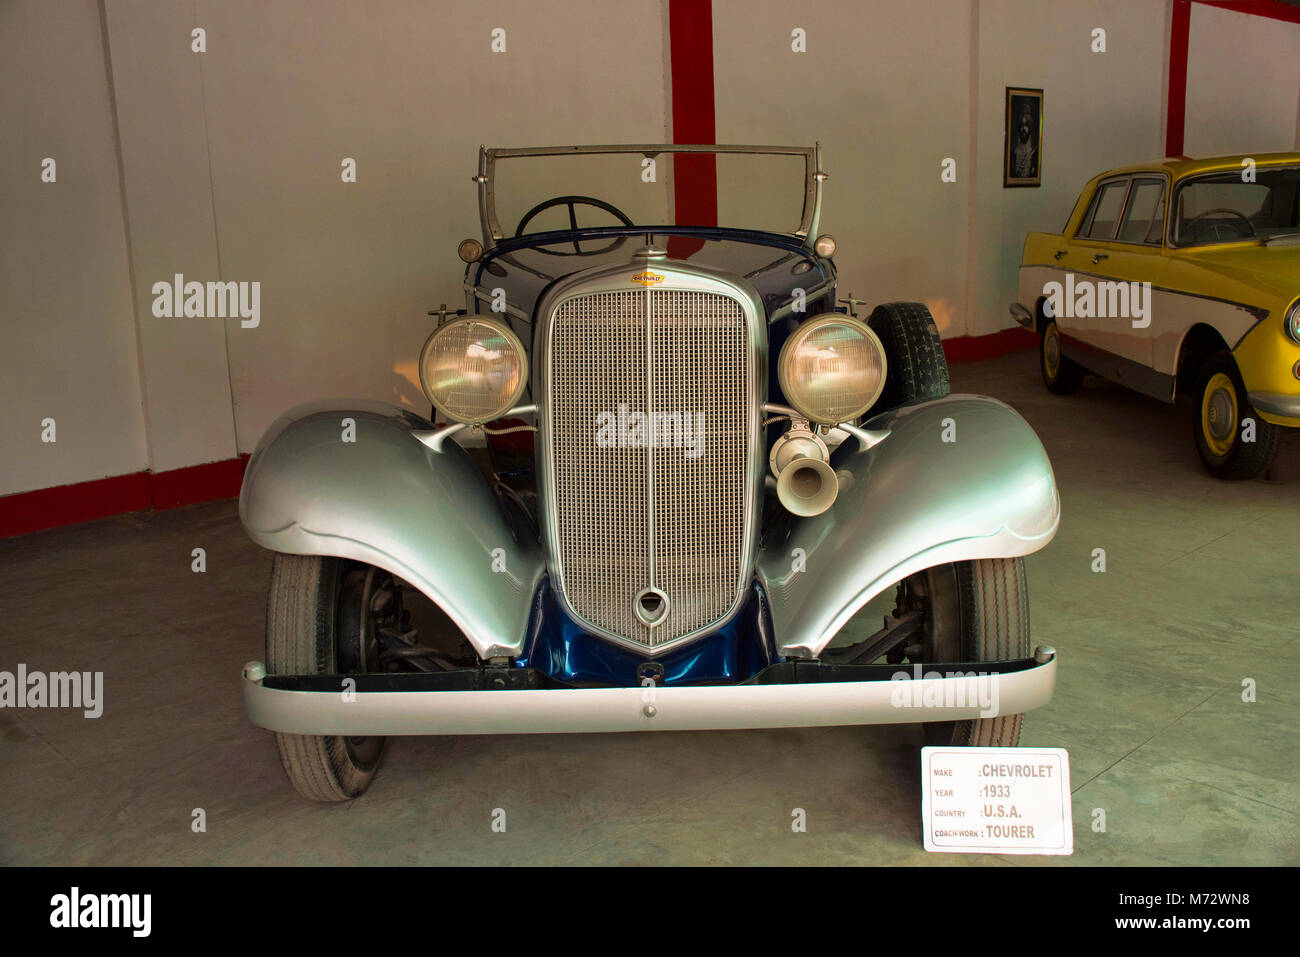 Chevrolet, gray colored vintage car in Auto World Vintage Car Museum of Ahmedabad Gujarat - Stock Image